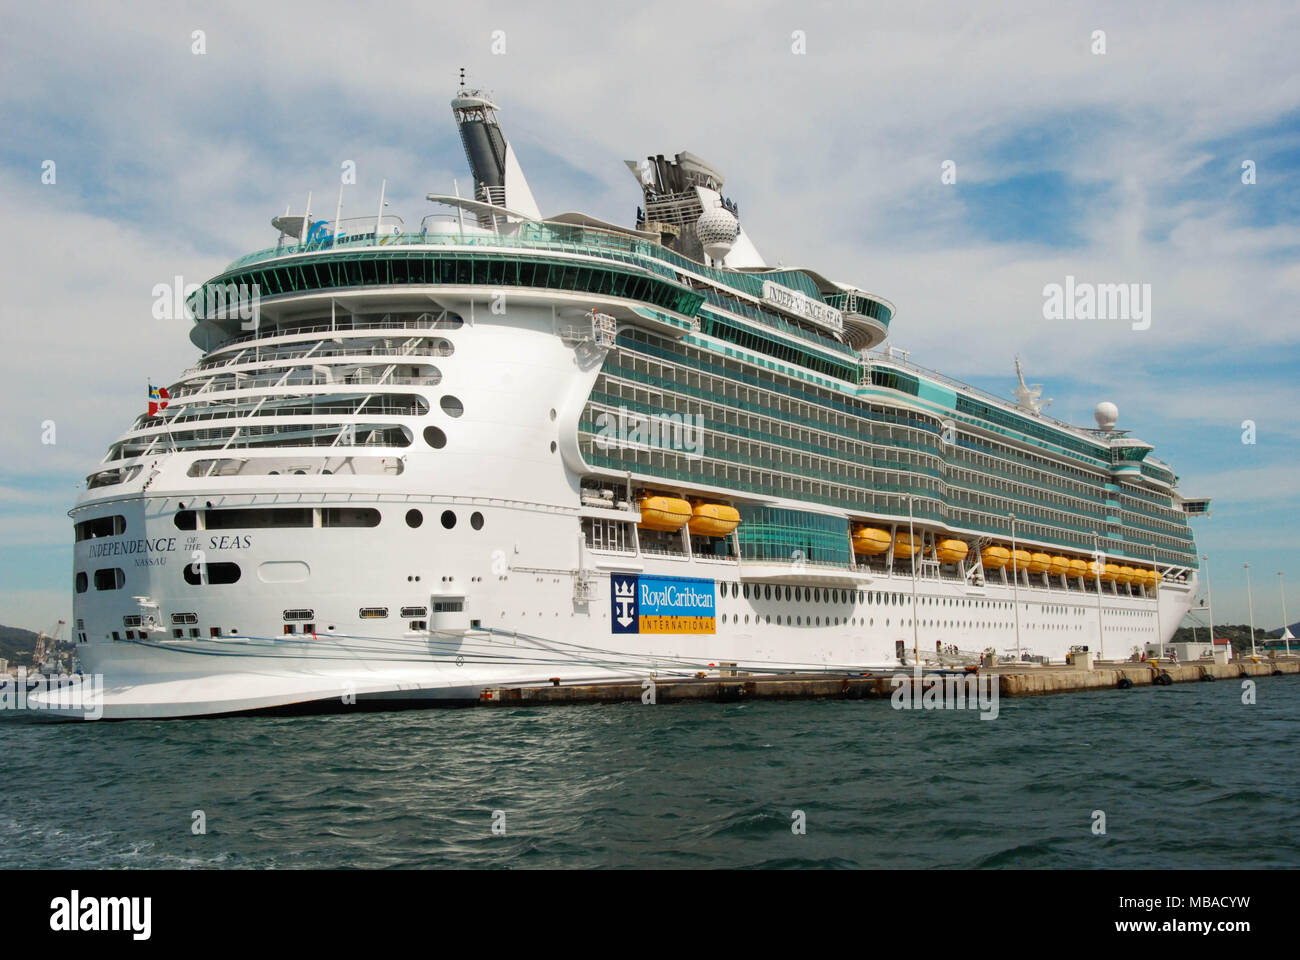 Wide angle view of the cruise liner Independence of the Seas - Stock Image